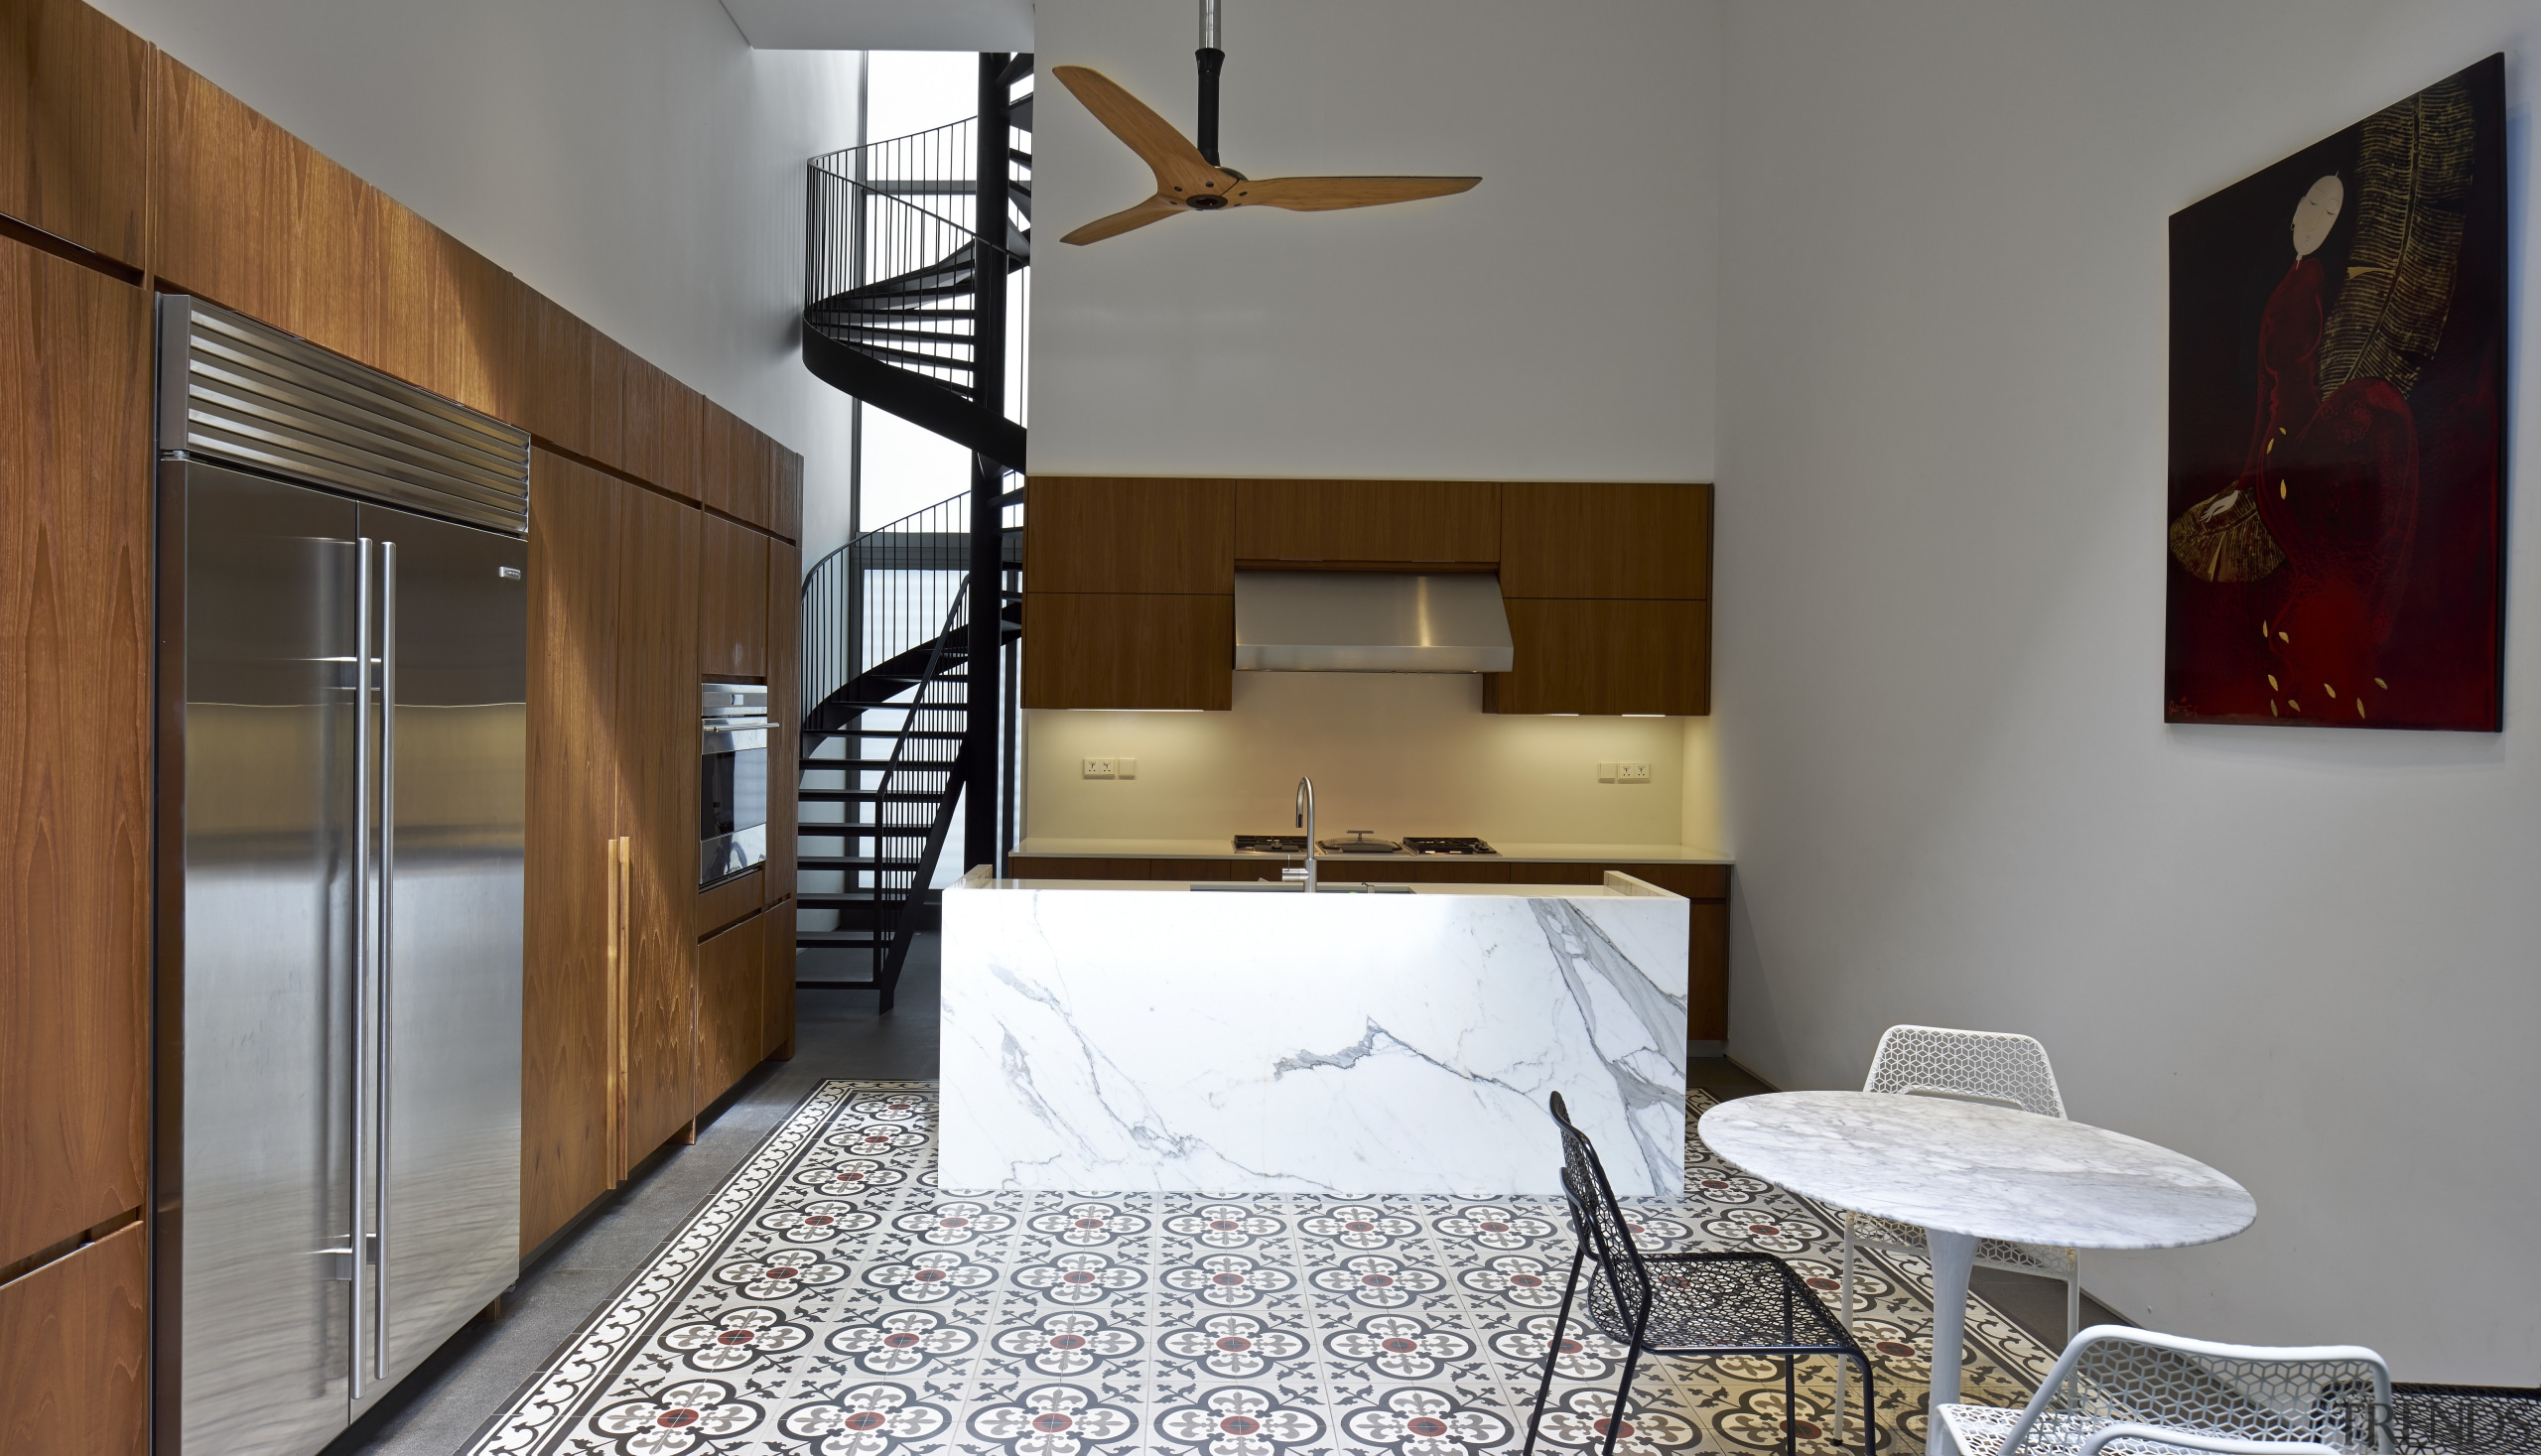 The kitchen is in the rear block of architecture, home, interior design, real estate, room, gray